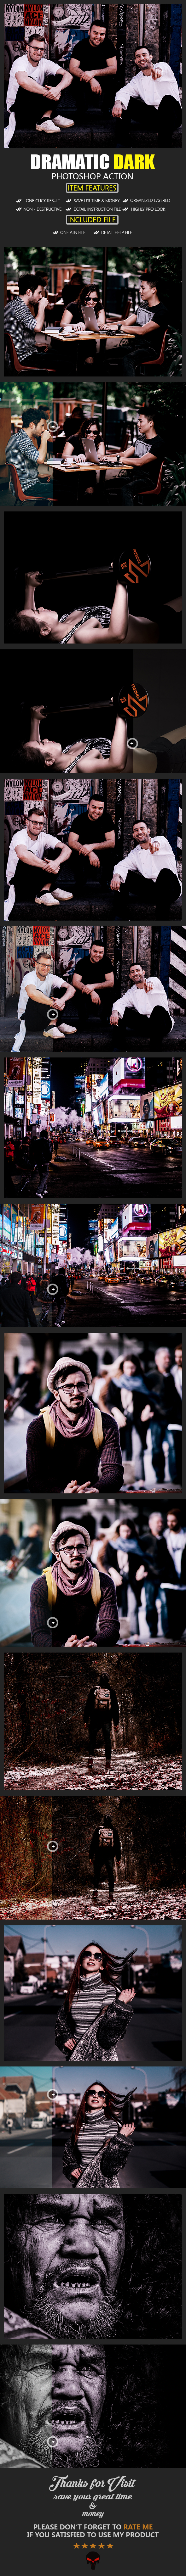 Dramatic Dark Photoshop Action - Photo Effects Actions